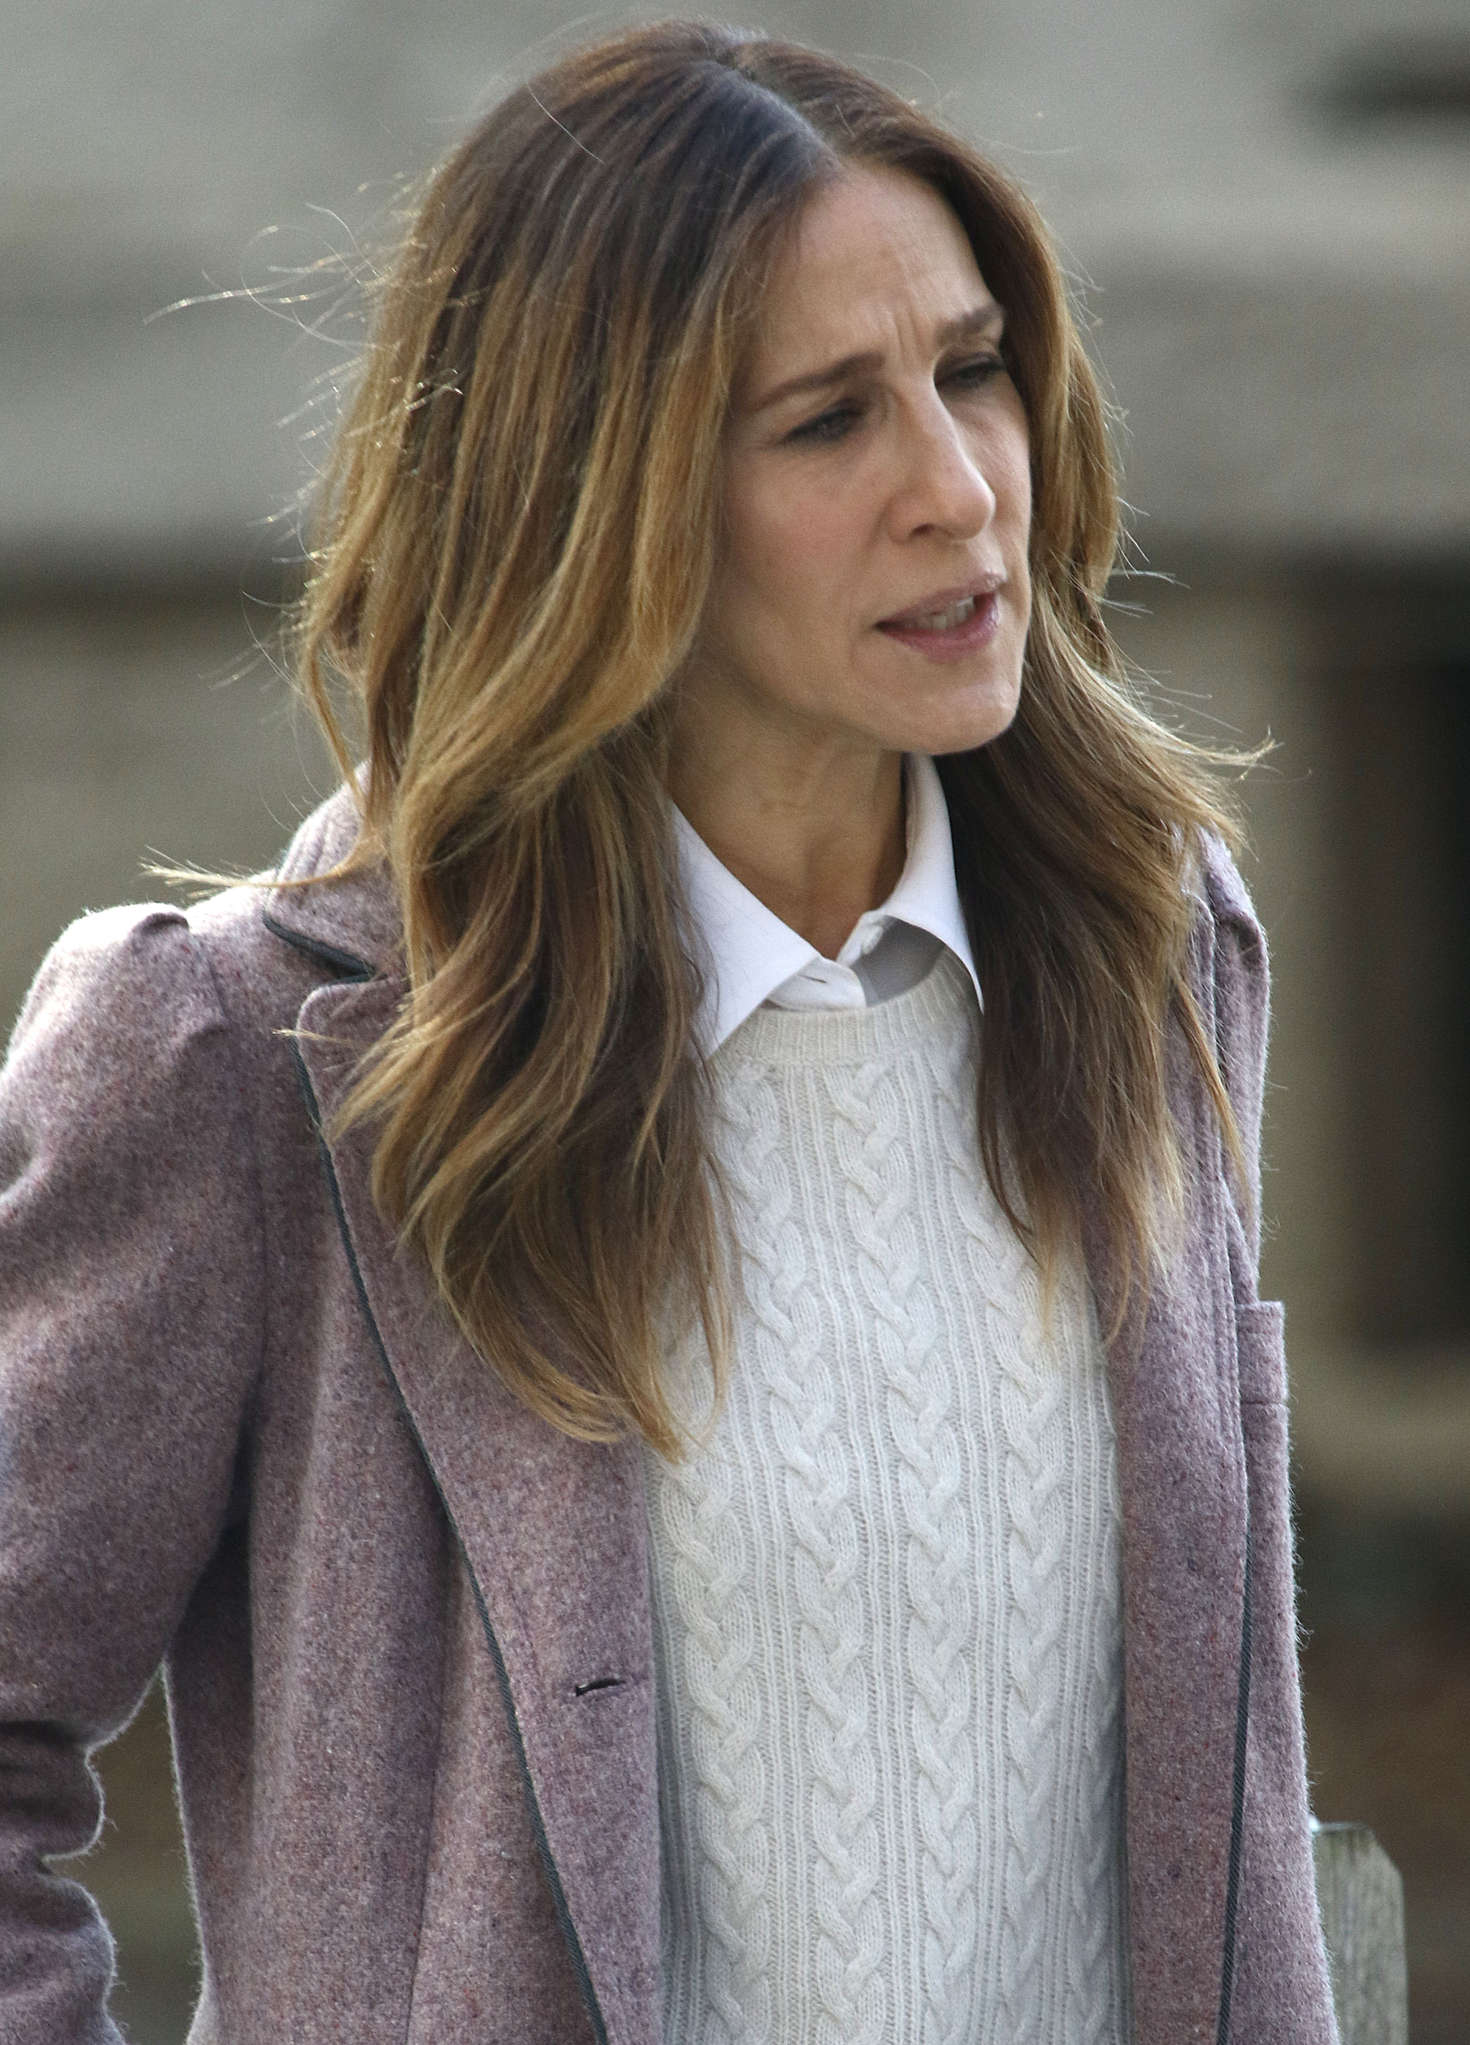 Sarah Jessica Parker Filming Divorce in New York